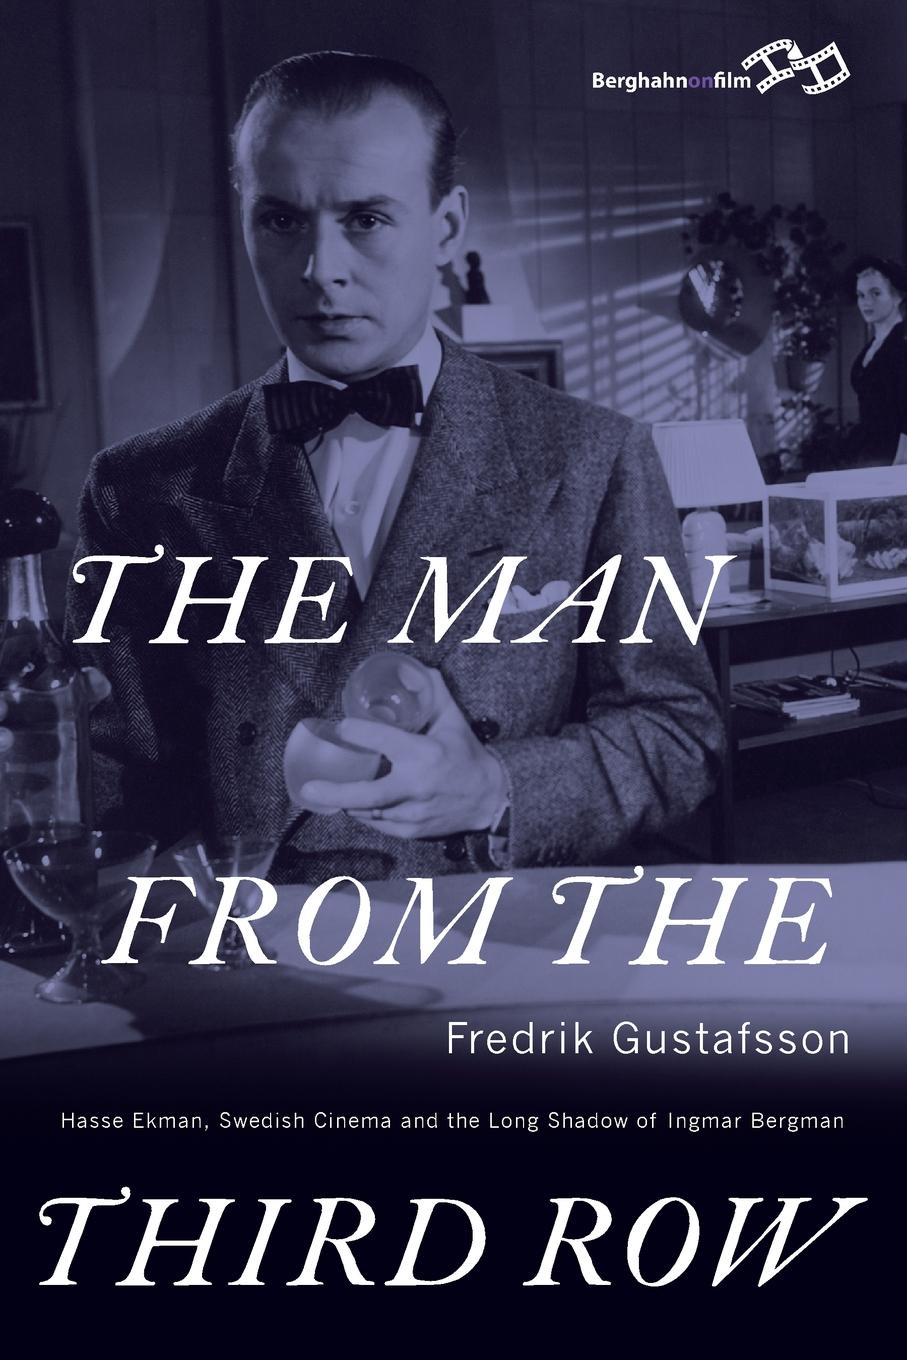 Fredrik Gustafsson. THE MAN FROM THE THIRD ROW. Hasse Ekman, Swedish Cinema and the Long Shadow of Ingmar Bergman